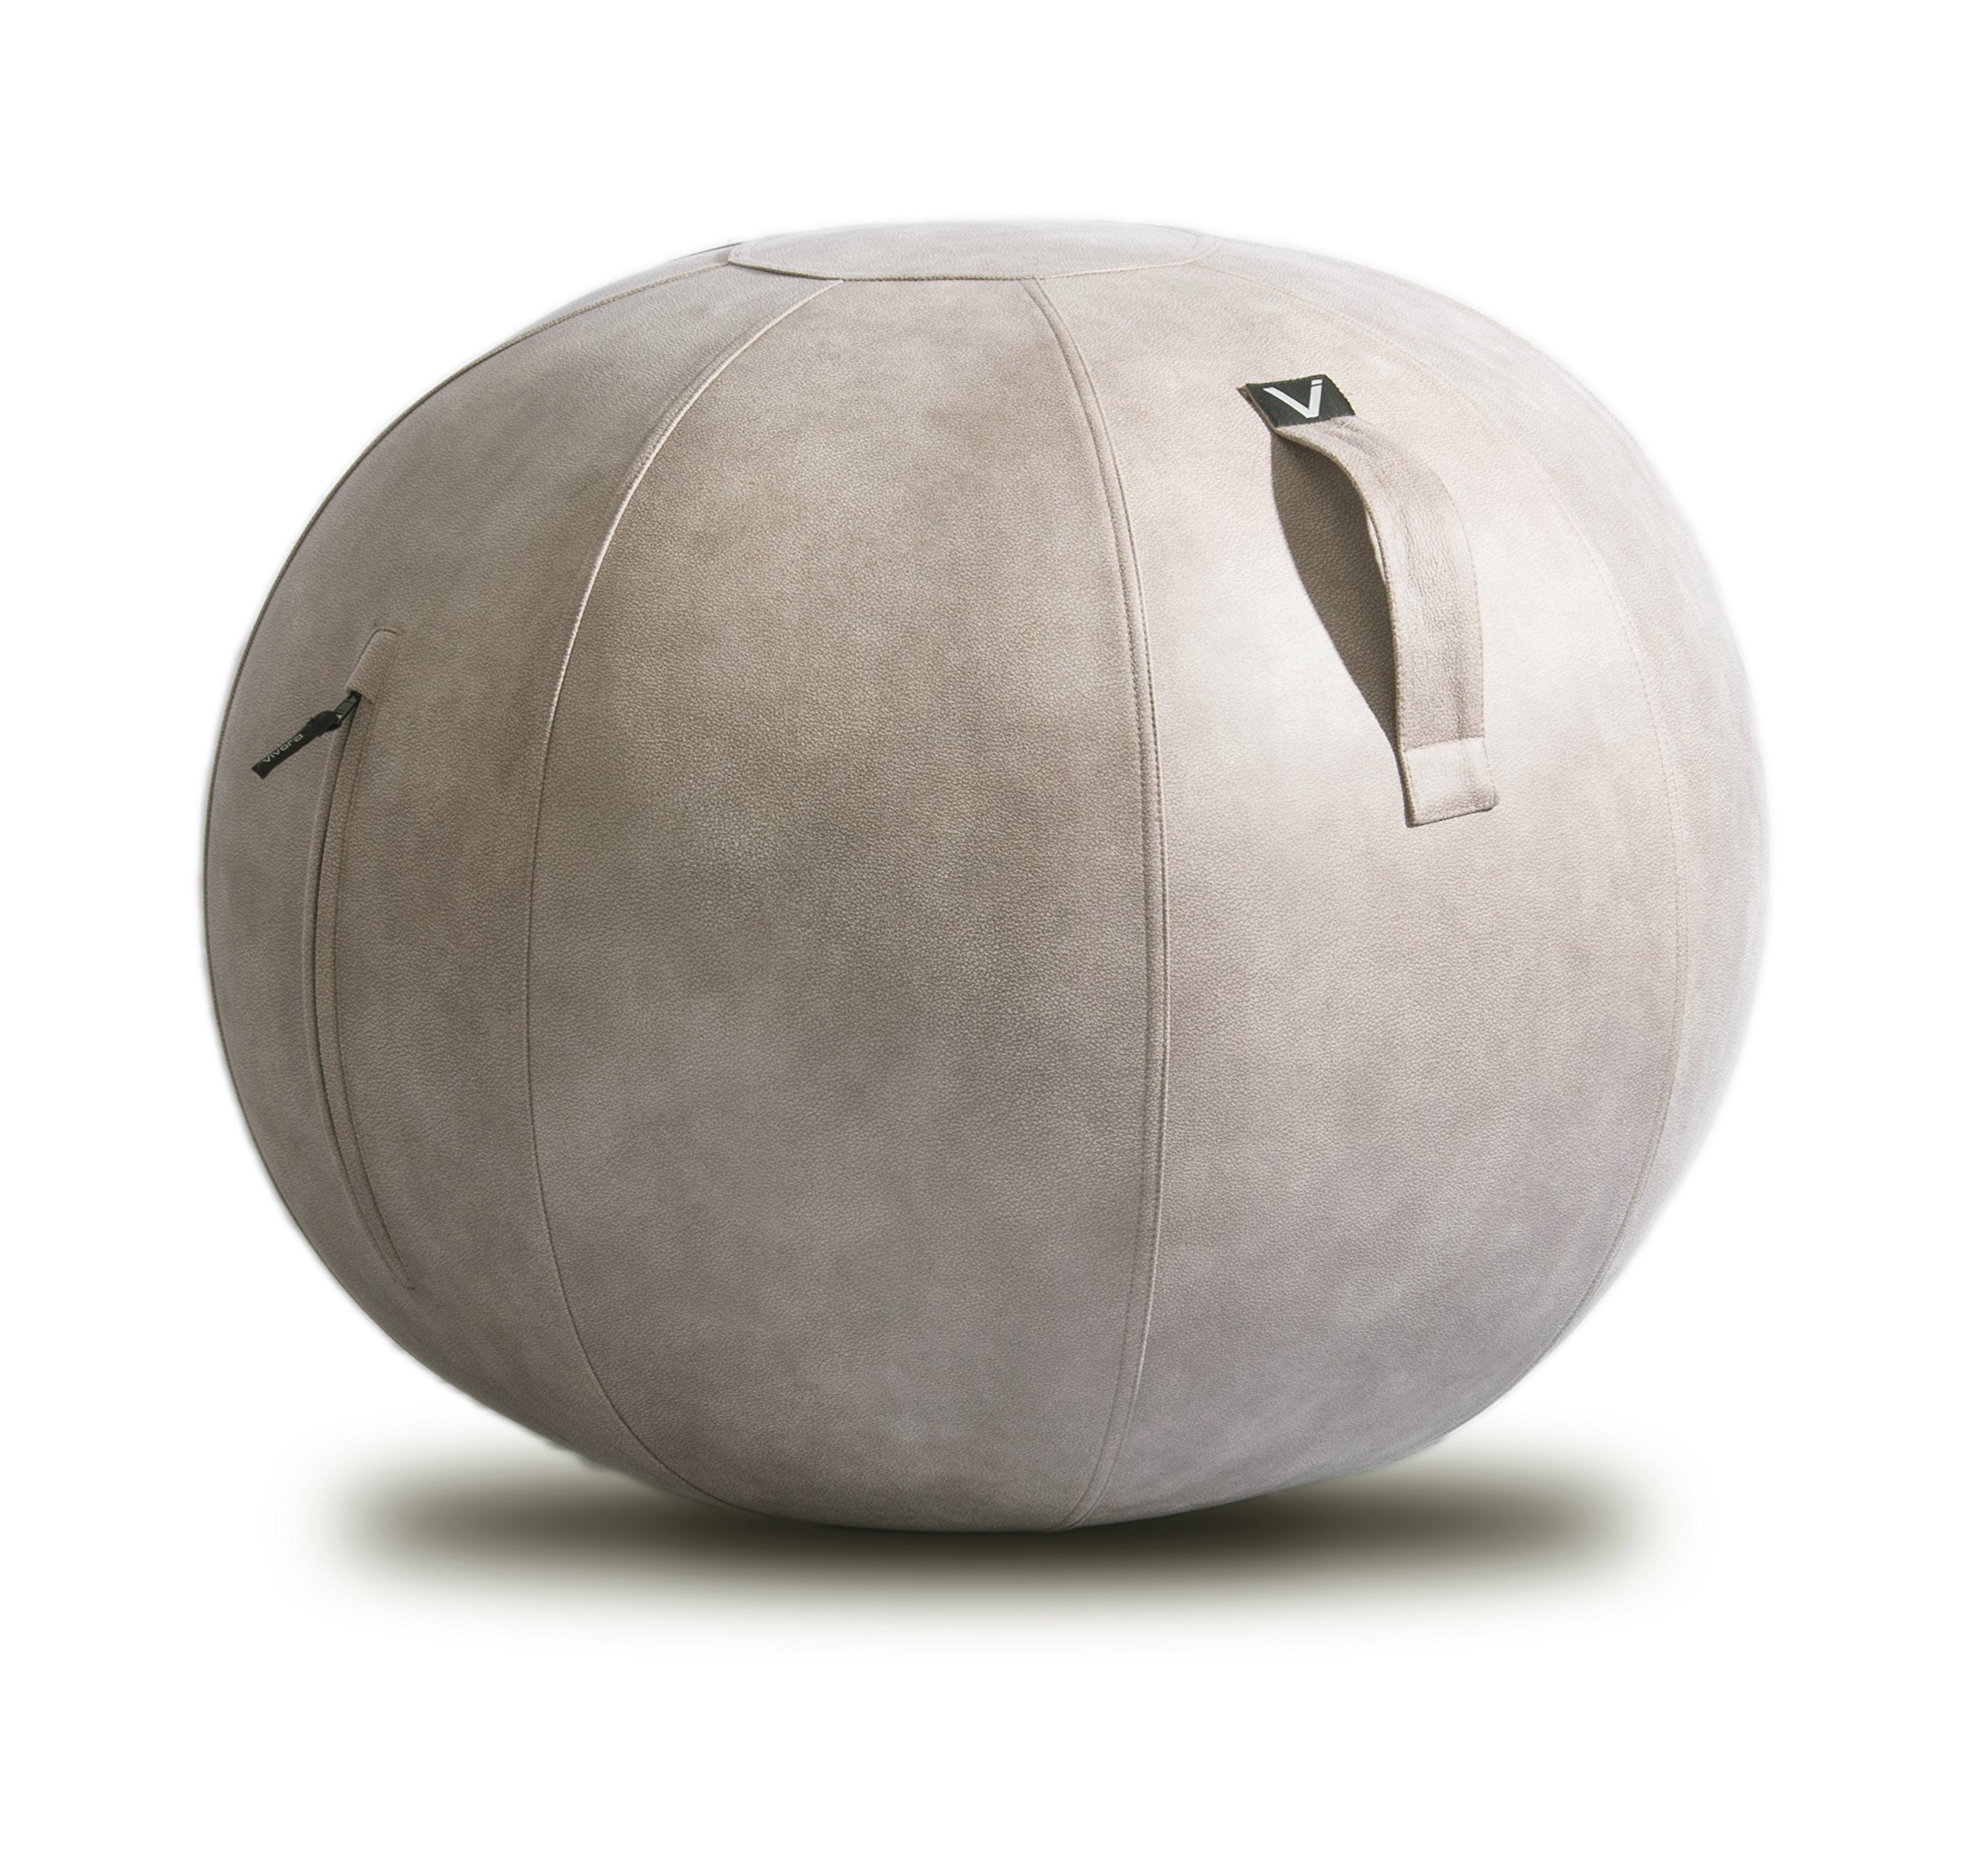 Vivora Luno - Self-Standing Sitting Ball Chair for Home, Office, Yoga, Stability and Fitness, Exercise Ball with Pump and Handle, Base Ring Not Needed